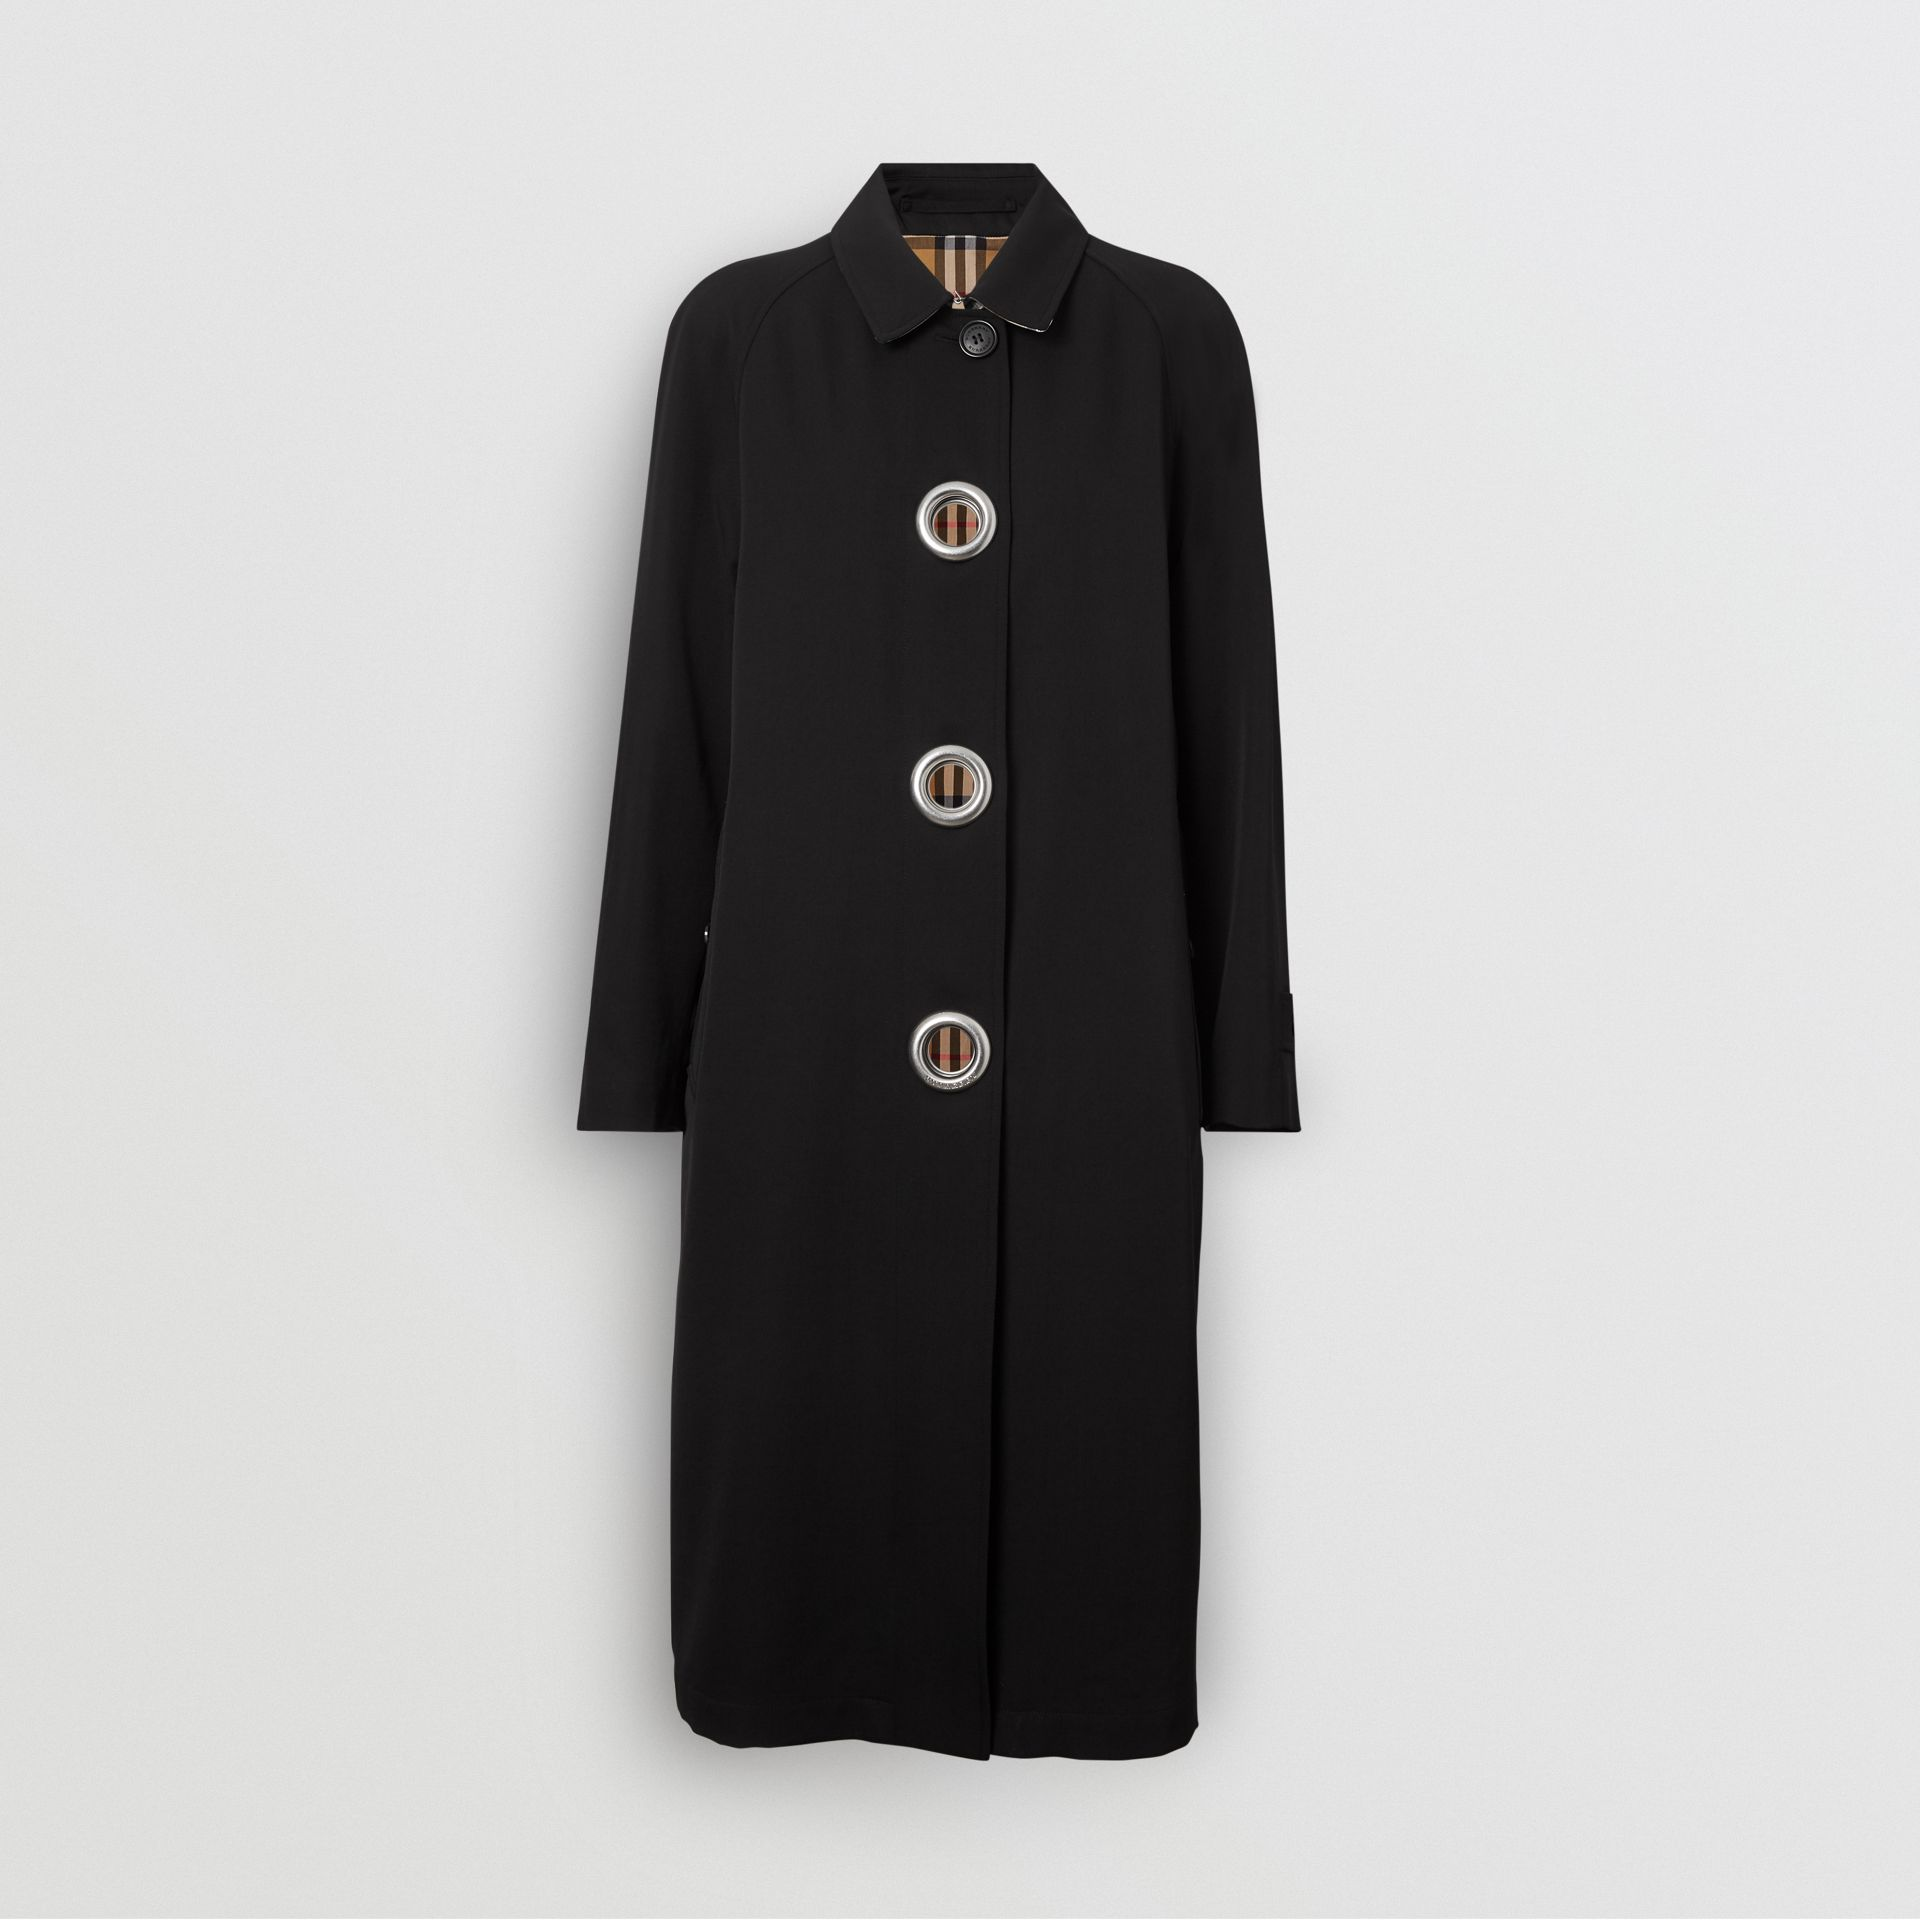 Grommet Detail Wool Gabardine Car Coat in Black - Women | Burberry Canada - gallery image 3